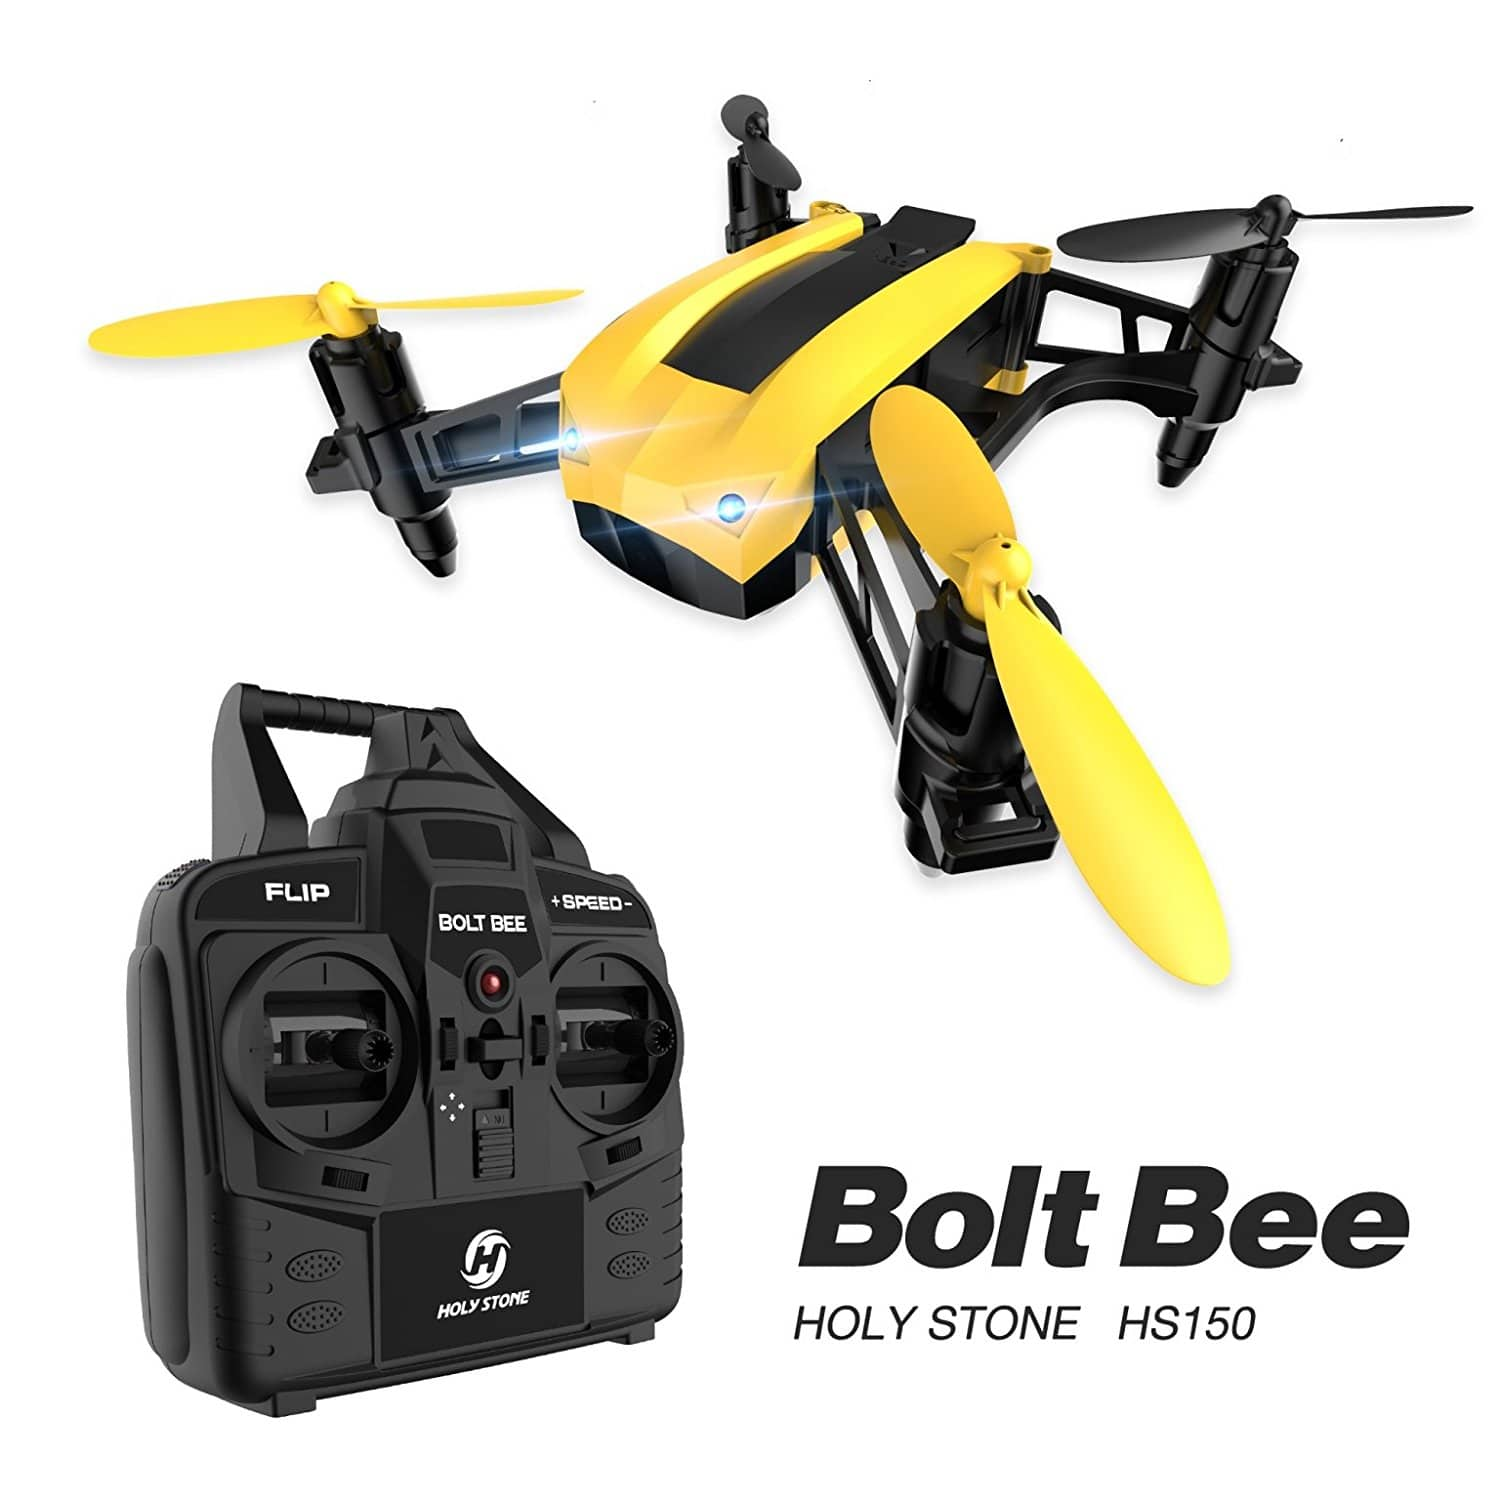 Holy Stone HS150 Mini Racing Drone Quadcopter $24.99